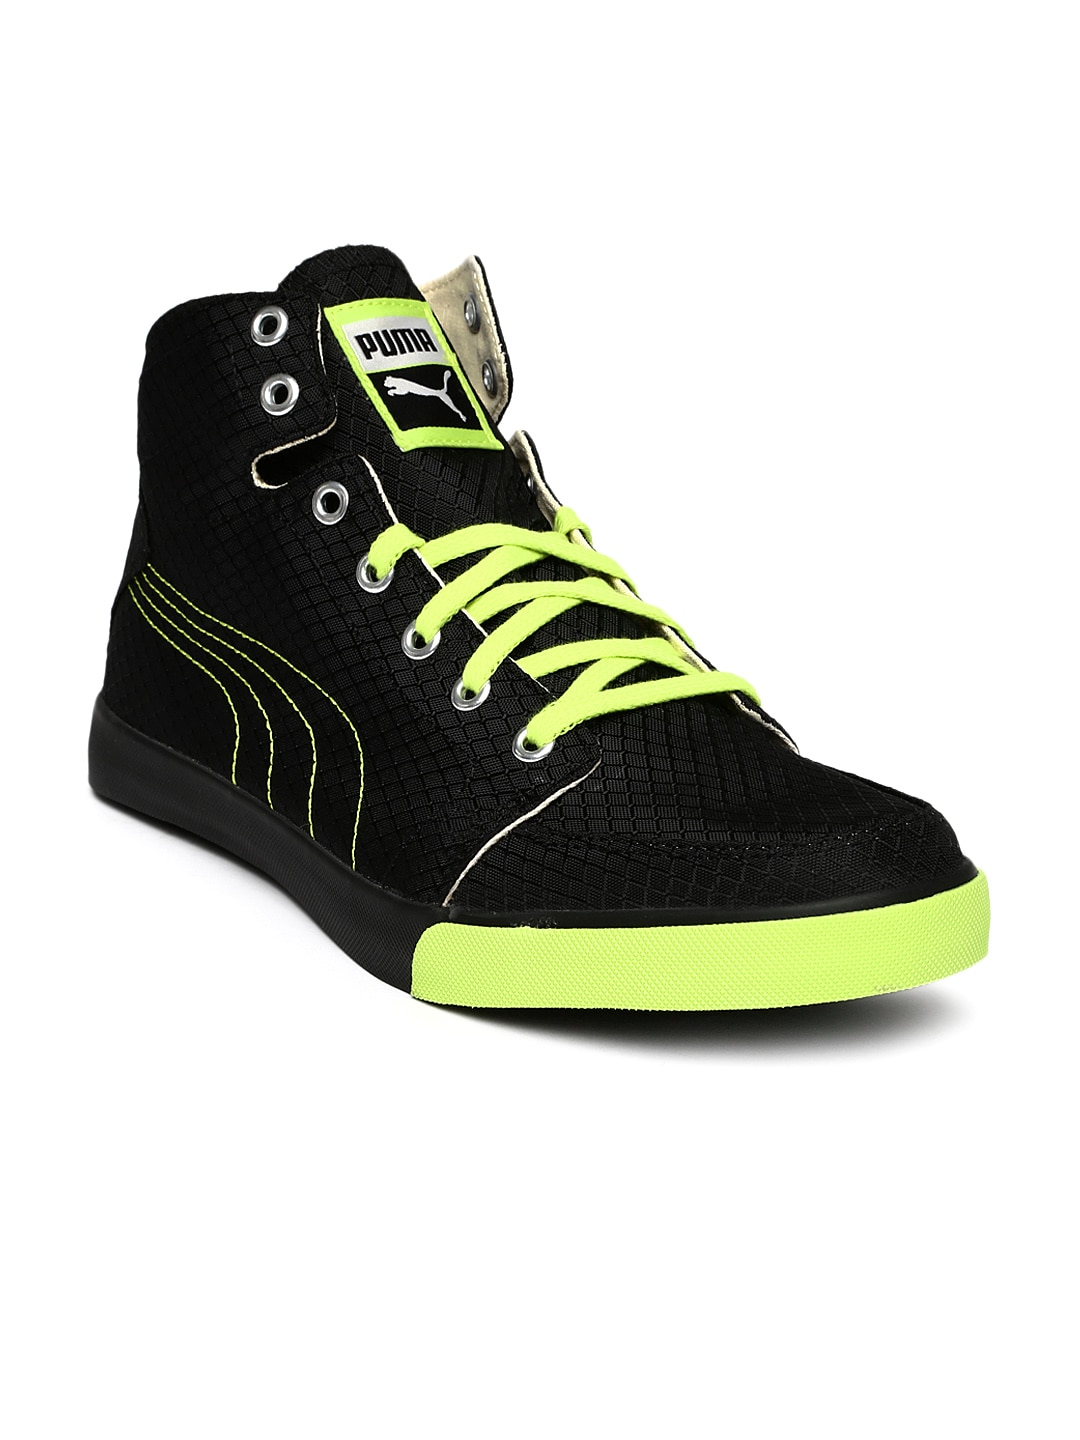 c8a2983cd319 Puma Men Casual Shoes Price List in India 31 March 2019